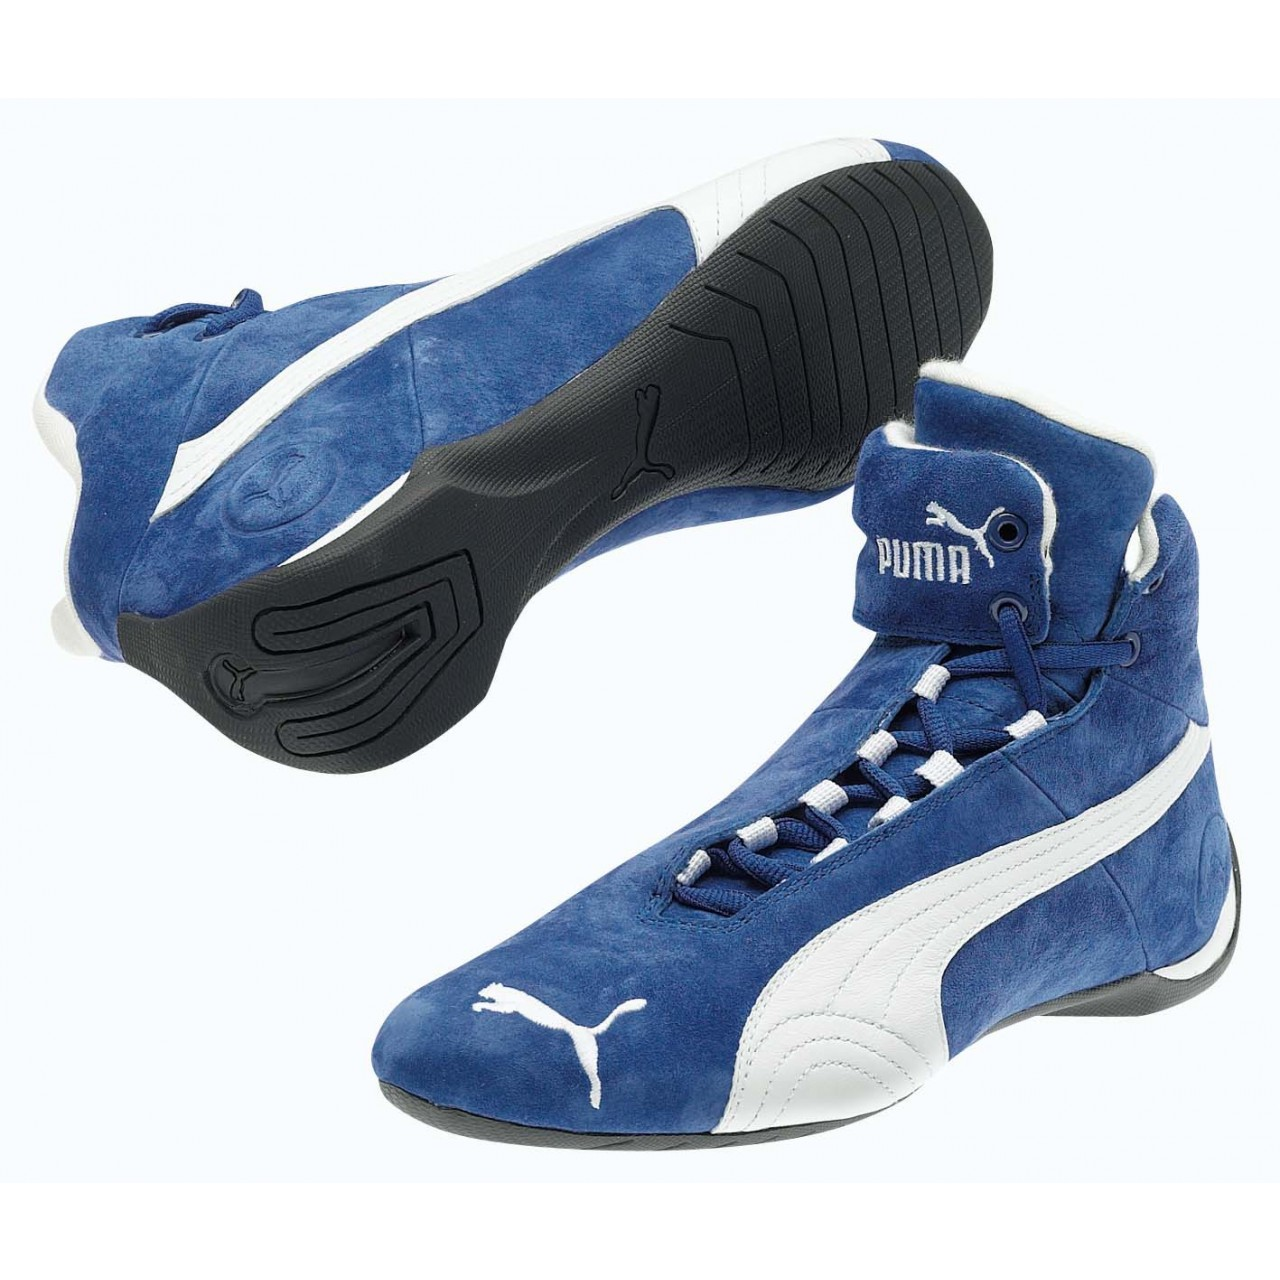 lowest price ad6d6 fd2f9 PUMA Future Cat Mid Pro. click any image to enlarge